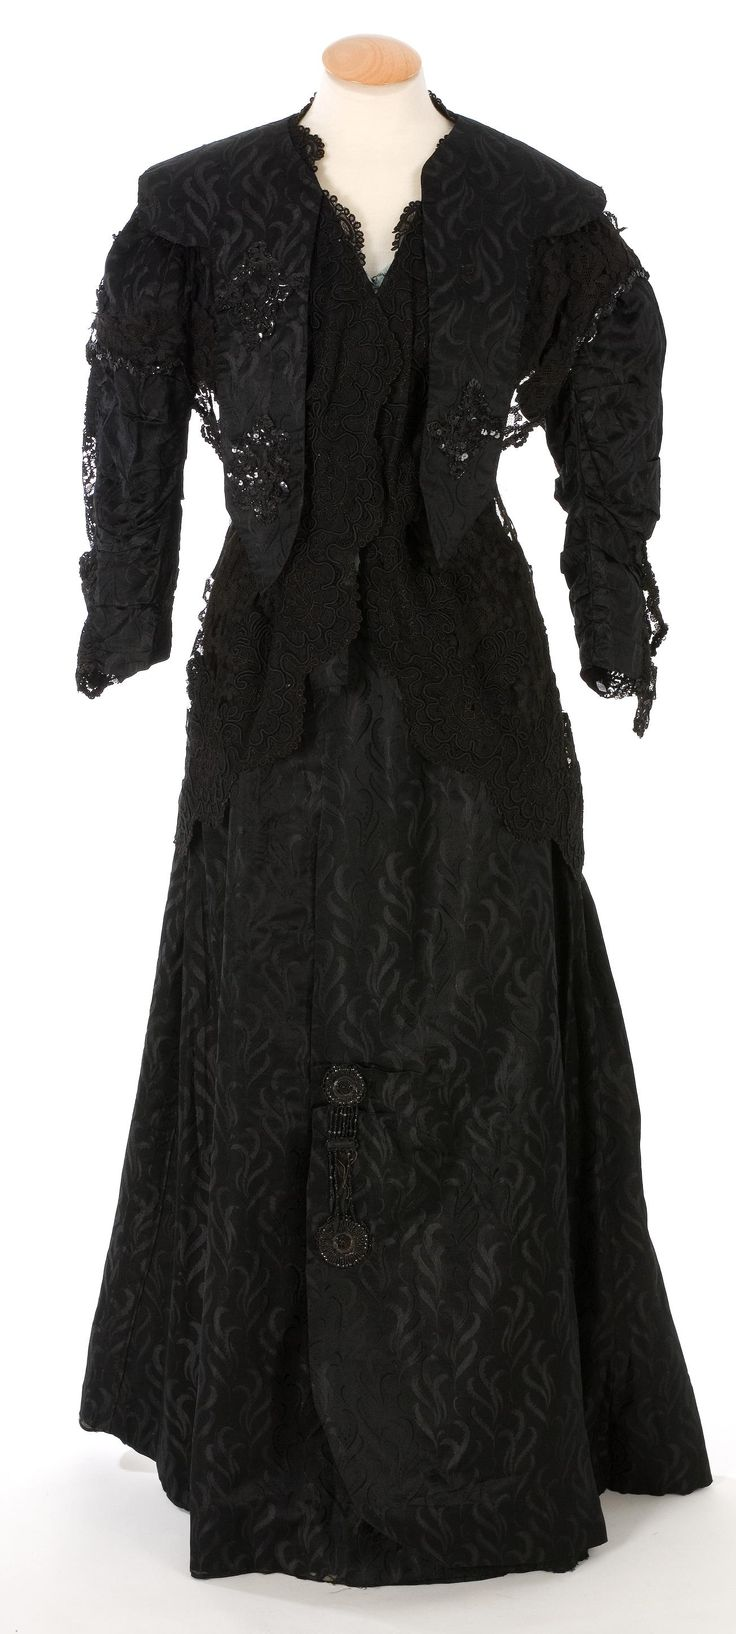 Black silk jaquard dress in 3 pieces, ca. 1900-14, trimmed with jet beads, sequins, and black mechanical lace. Closes with 14 hooks/eyes. Boned bodice lined with sea green printed cotton; skirt lined with brown cotton taffeta. From IMATEX; click through for huge high-definition photo. (Click Pictures, then Extend Image.)